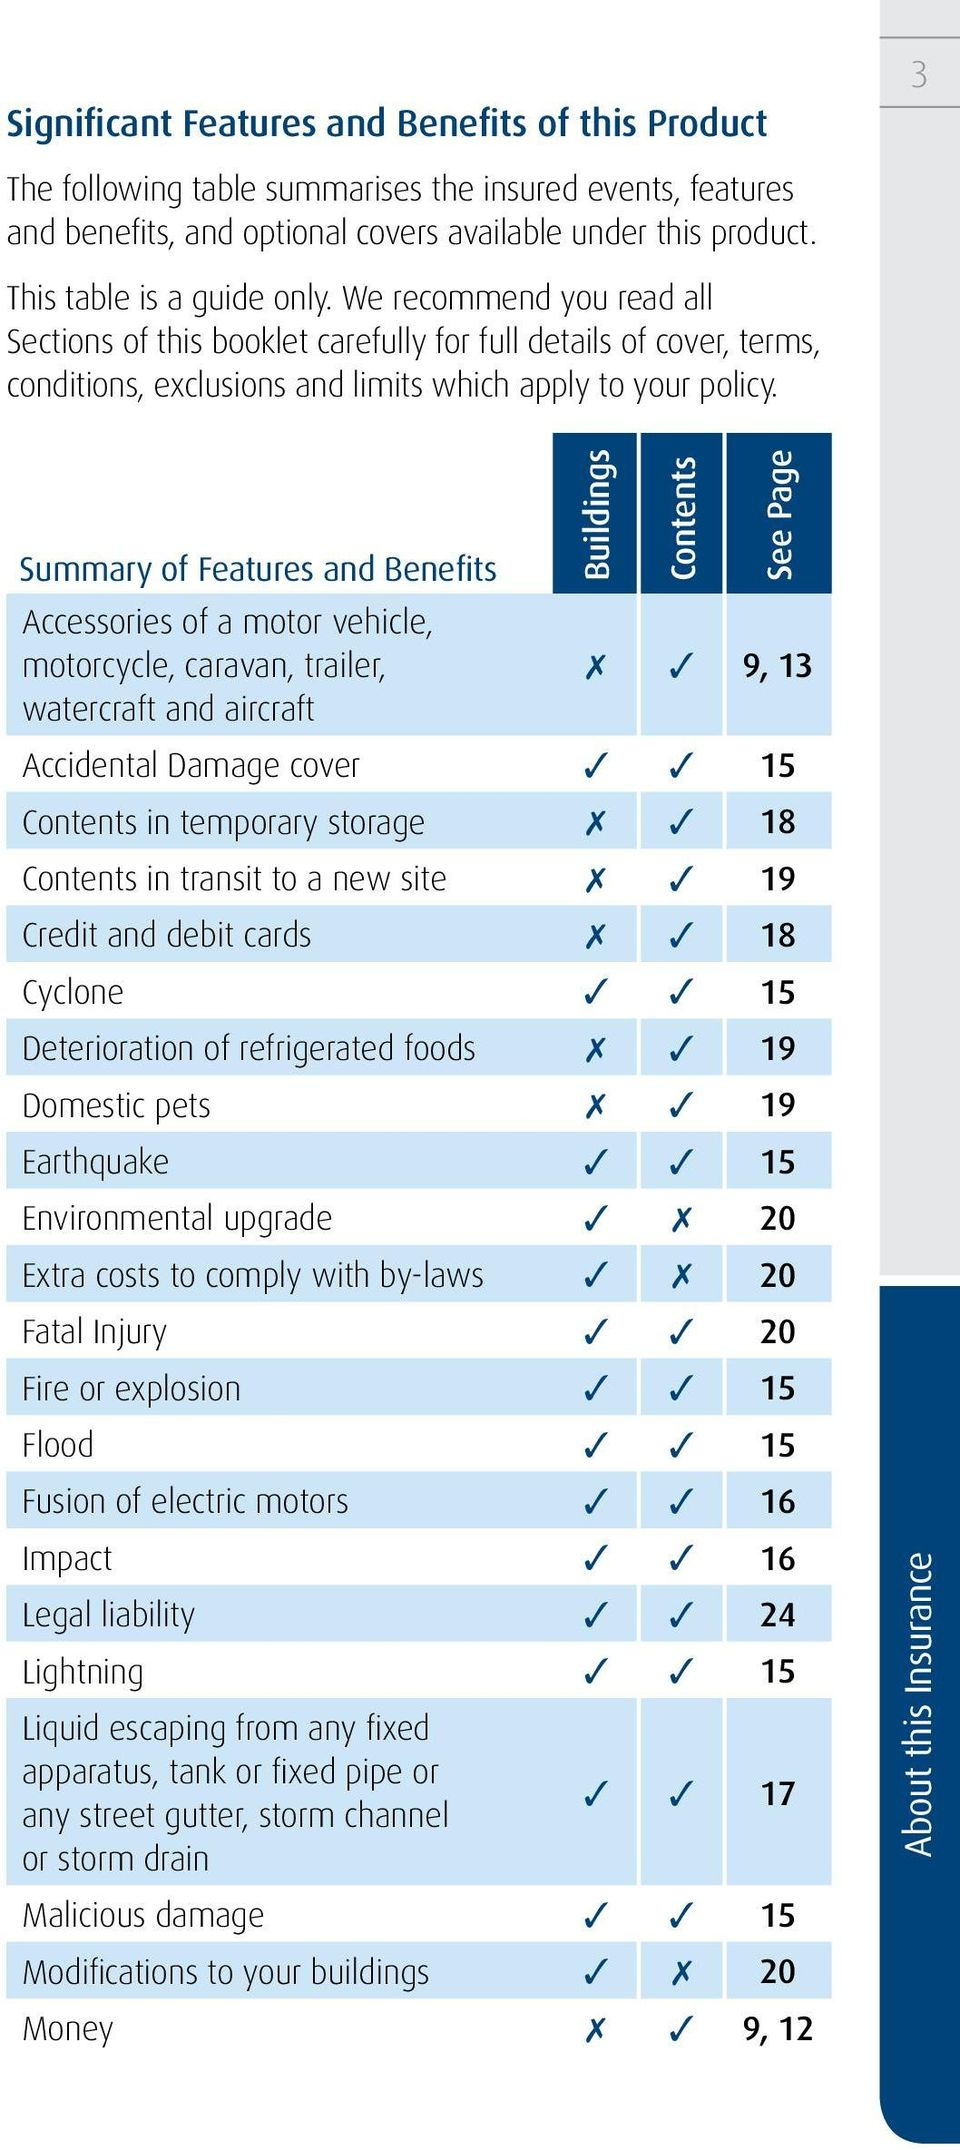 Buildings Contents See Page Summary of Features and Benefits Accessories of a motor vehicle, motorcycle, caravan, trailer, 7 3 9, 13 watercraft and aircraft Accidental Damage cover 3 3 15 Contents in